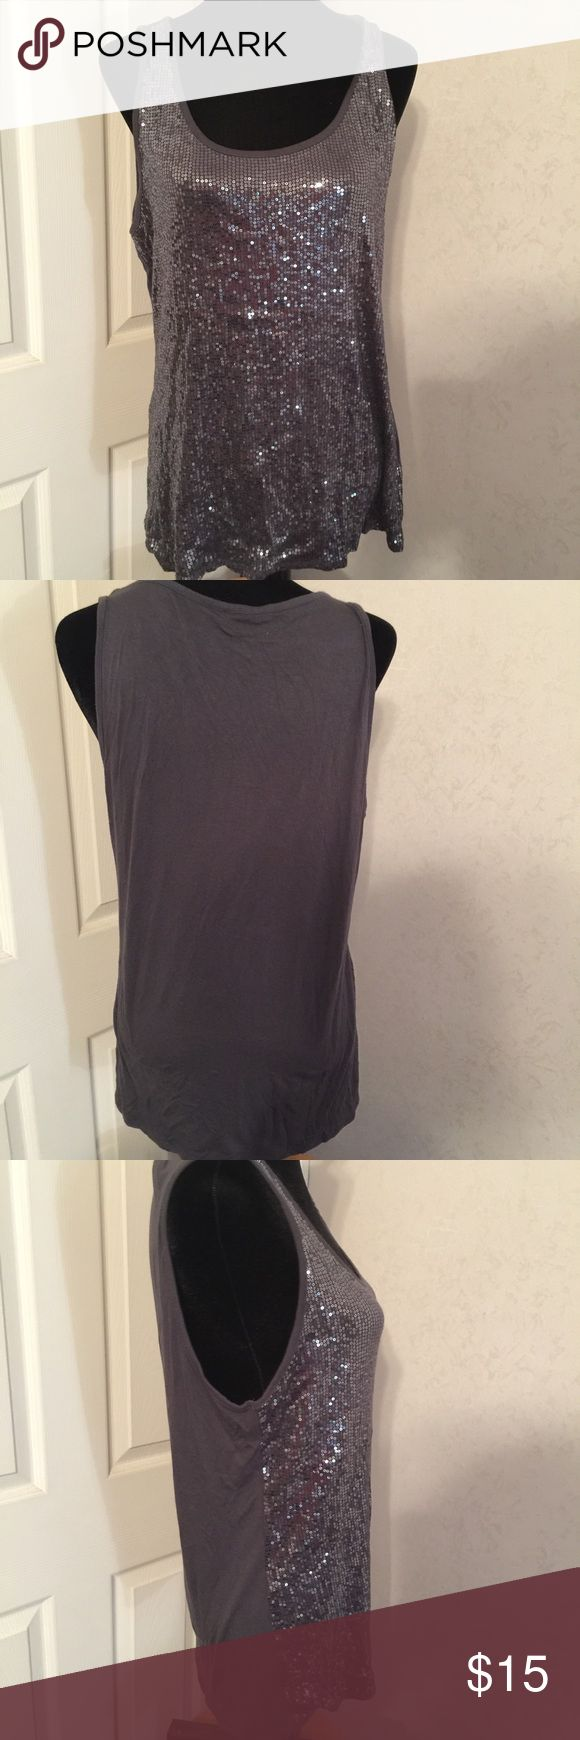 Maurice's gray sequin tank top size XXL. Maurice's gray sequin tank top size XXL. This is a great tank with sequin front and solid gray back in great shape. Please view all pictures. Maurices Tops Tank Tops